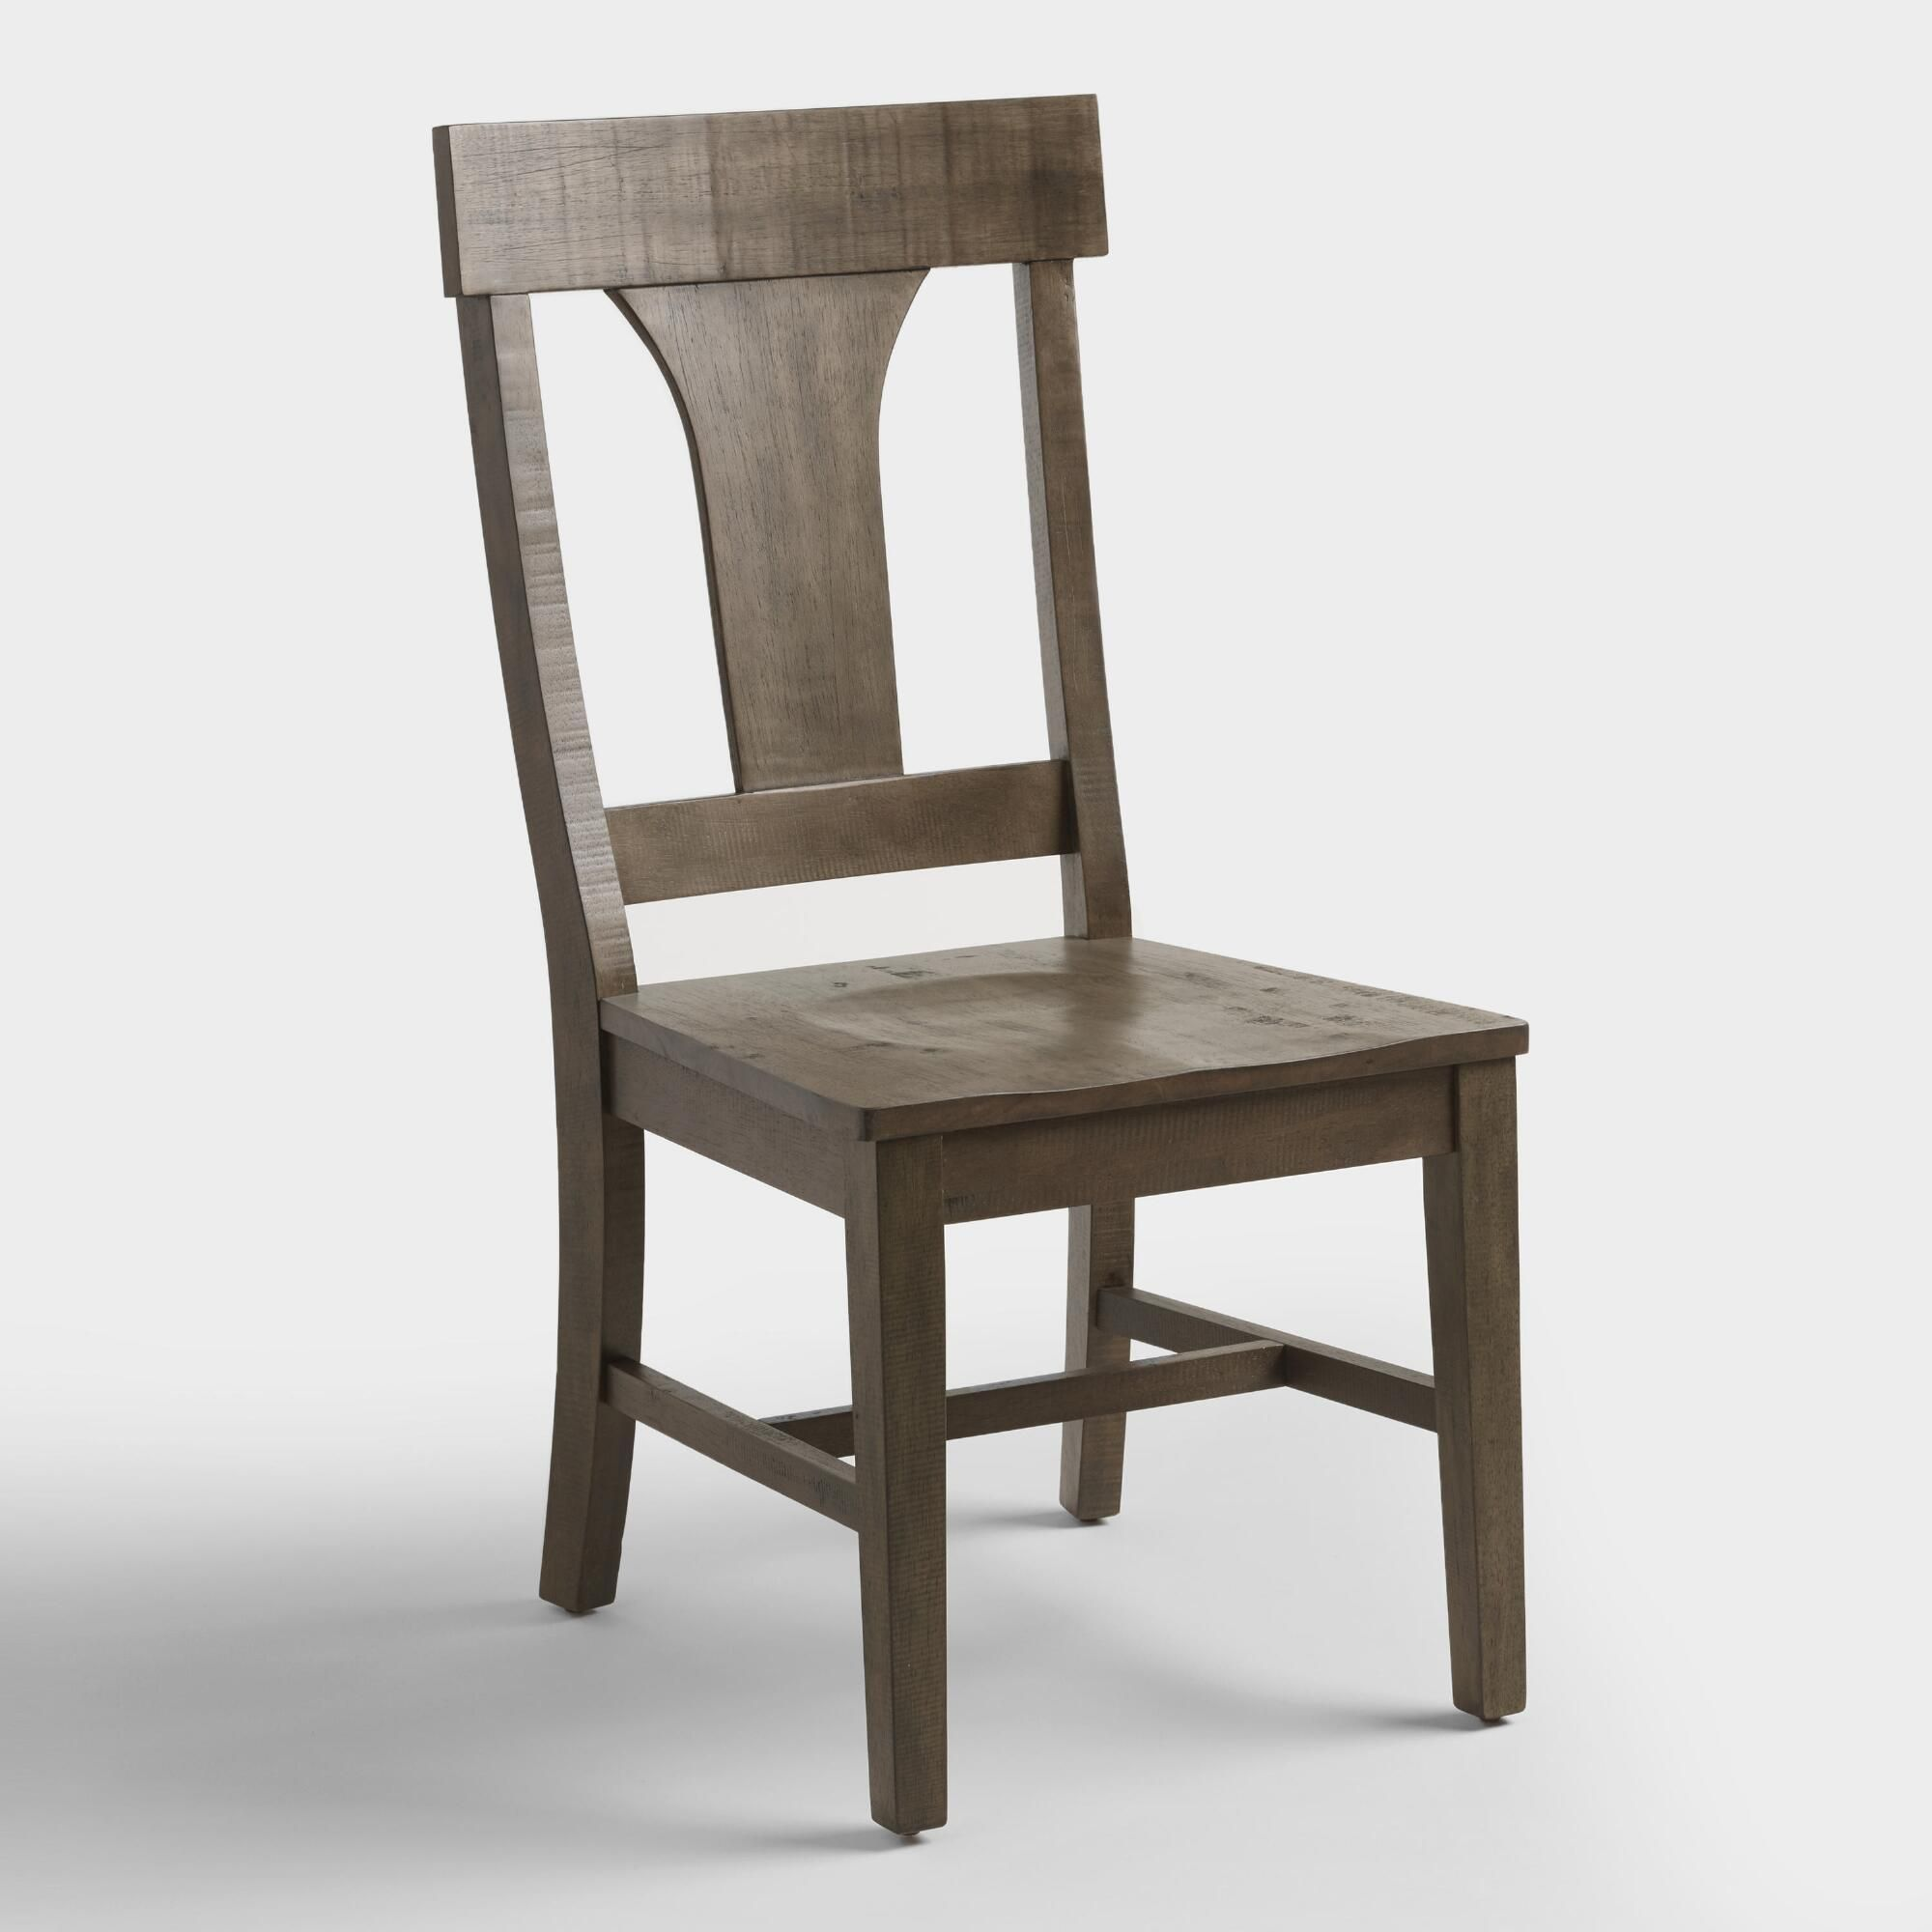 Genial Rustic Wood Brinley Dining Chairs Set Of 2: Brown By World Market